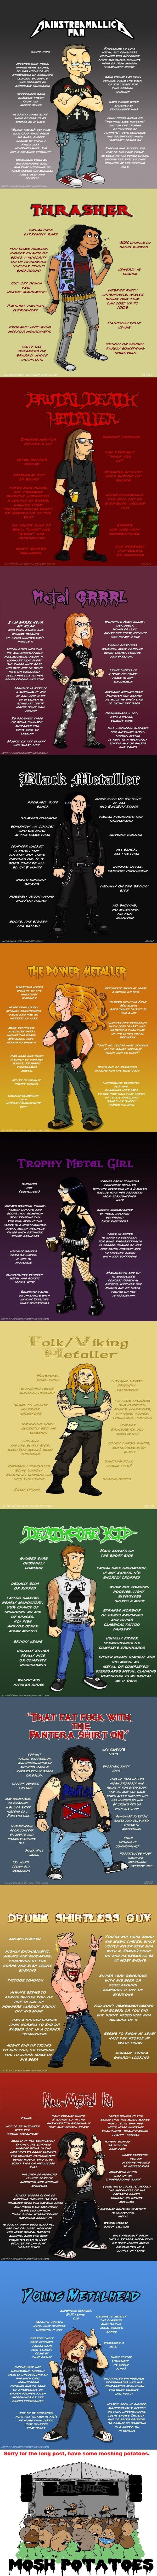 Guide to different Metalhead stereotypes.